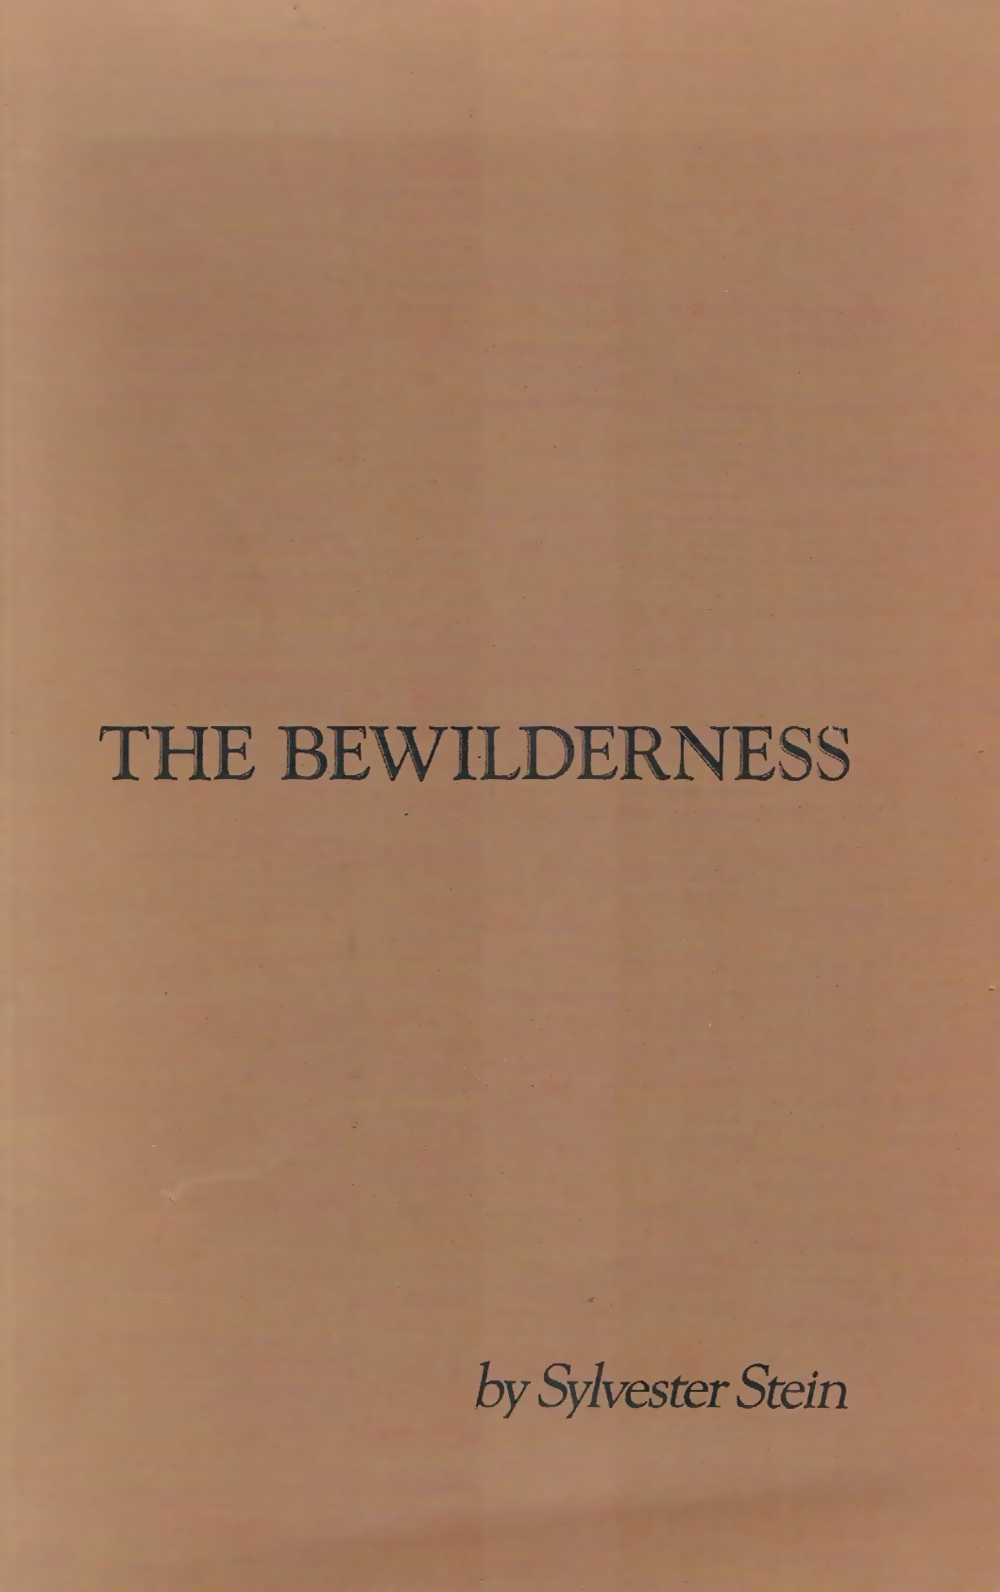 The Bewilderness - A collection of vignettes regarding some nonsense about Mr Maxi Moss.